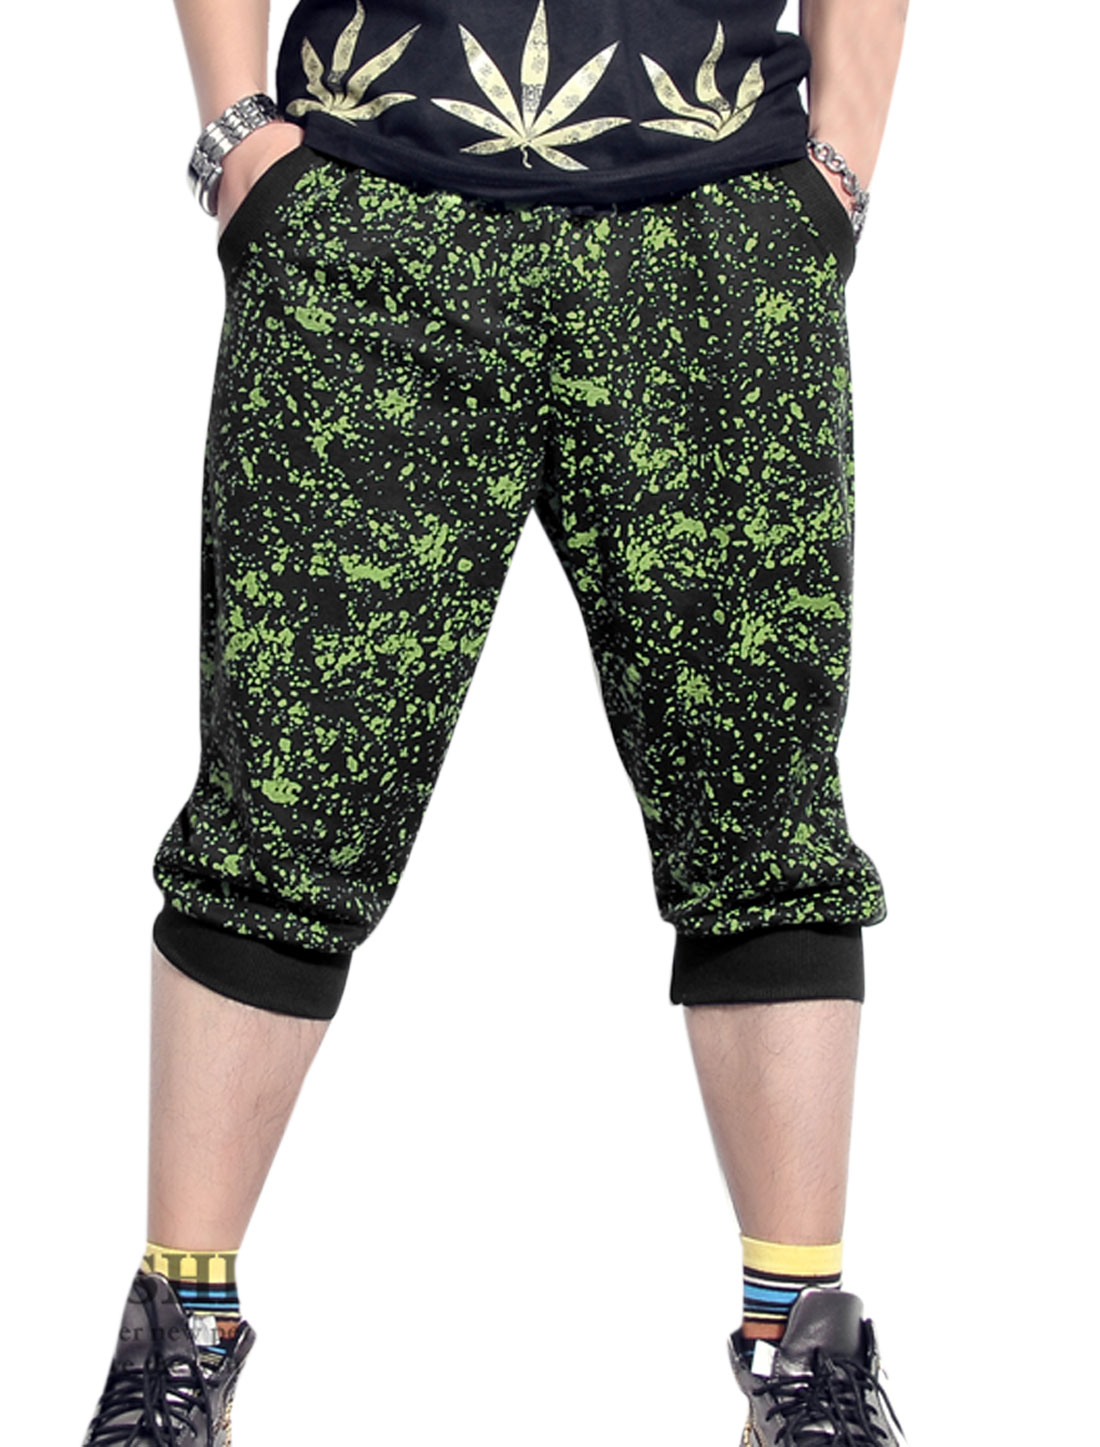 Men Dots Printed Ribbed Cuffs Loose Fit Capris Pants Green Black W30